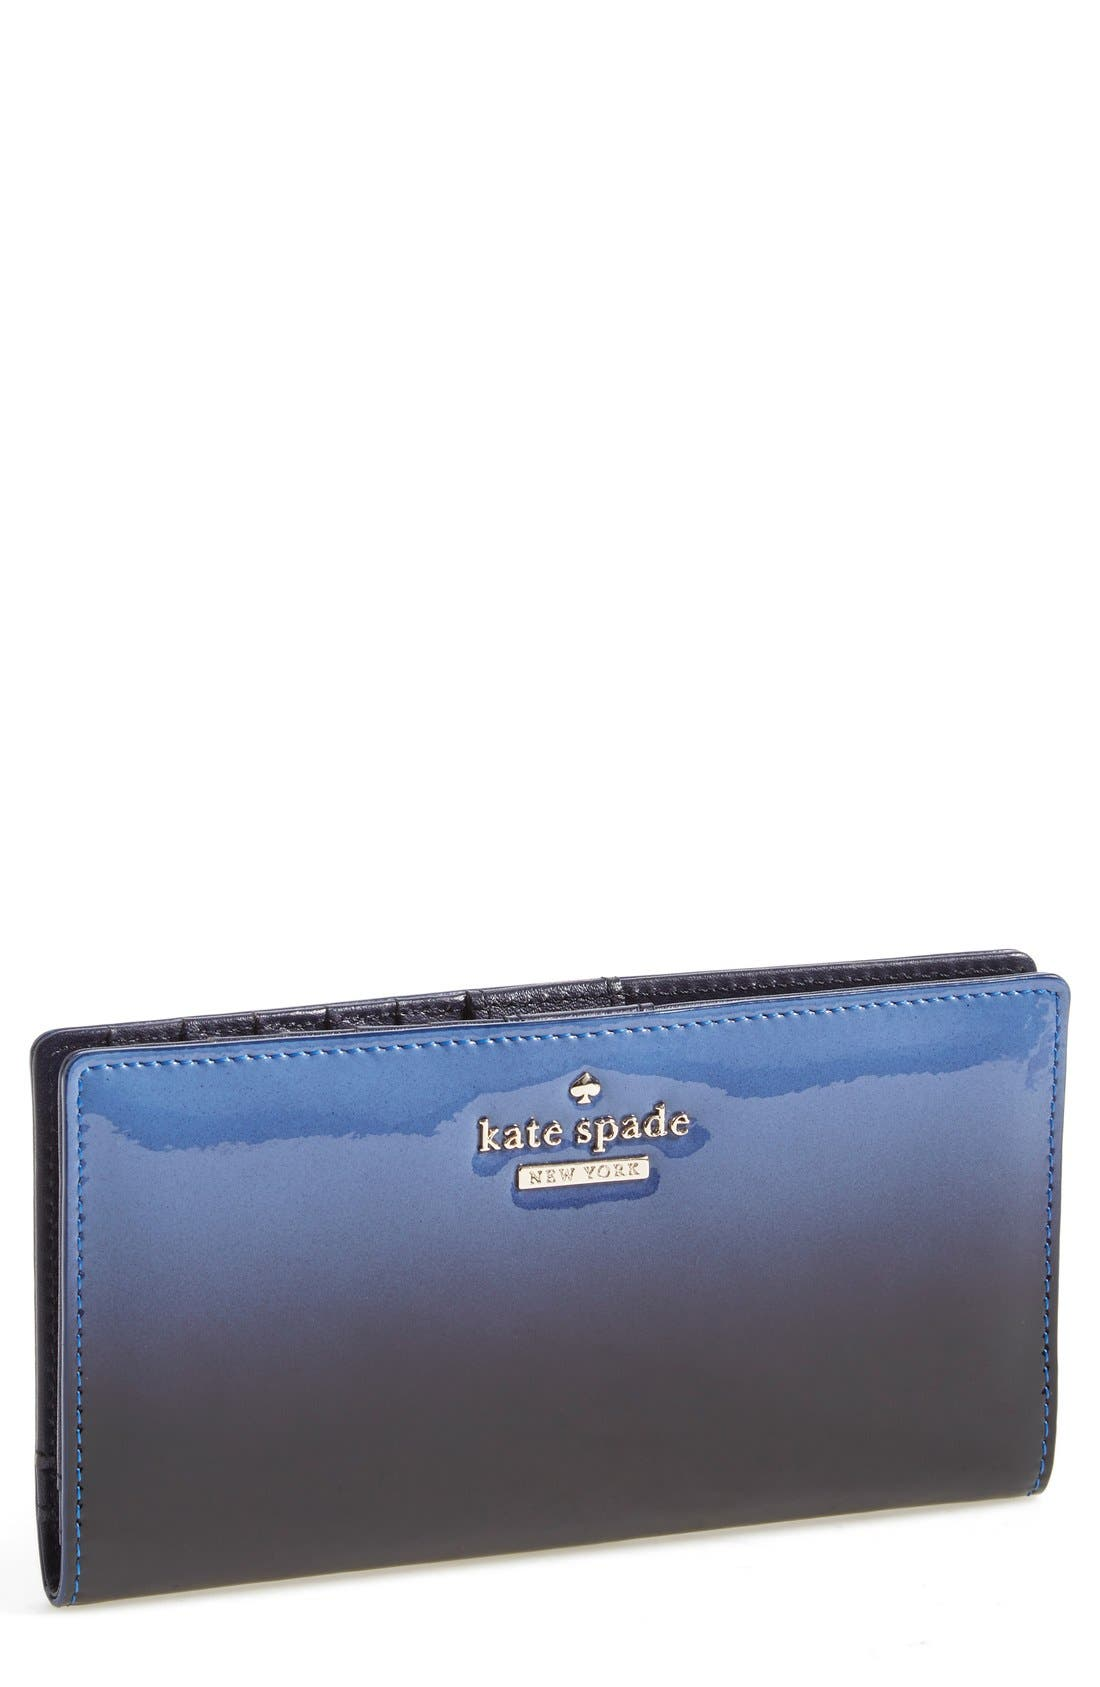 Alternate Image 1 Selected - kate spade new york 'cedar street - ombré patent stacy' leather clutch wallet